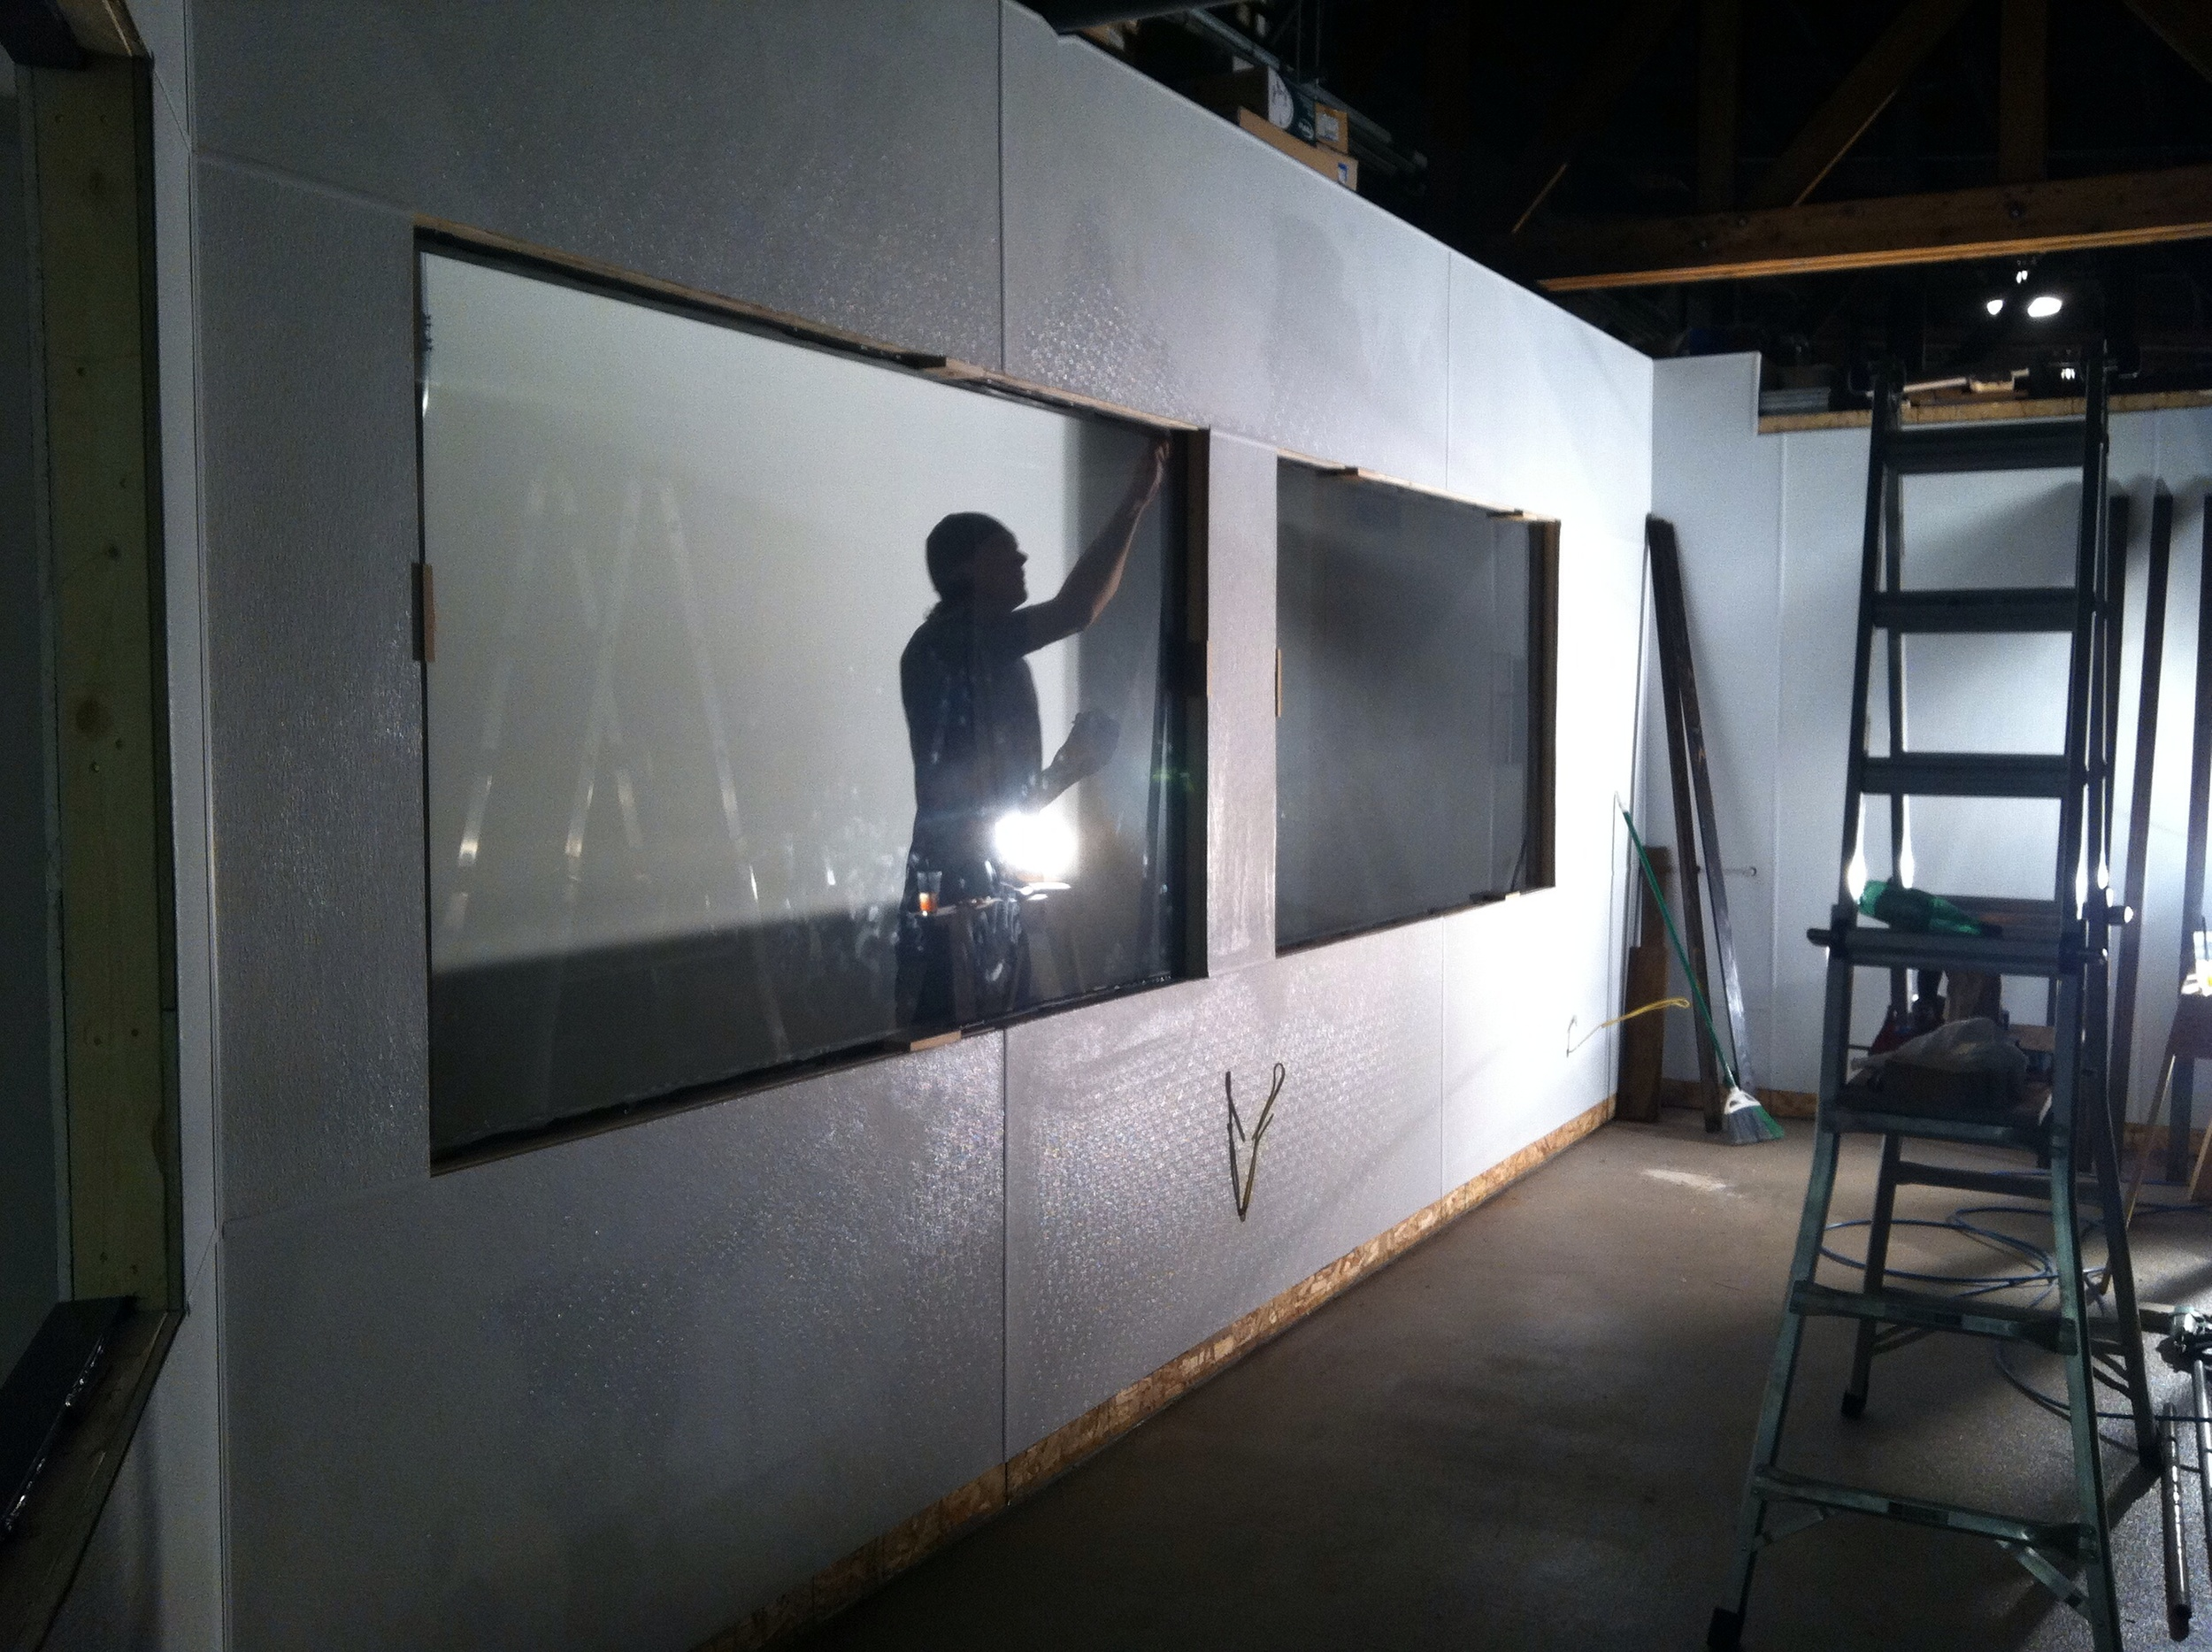 Installing windows in south side production area wall